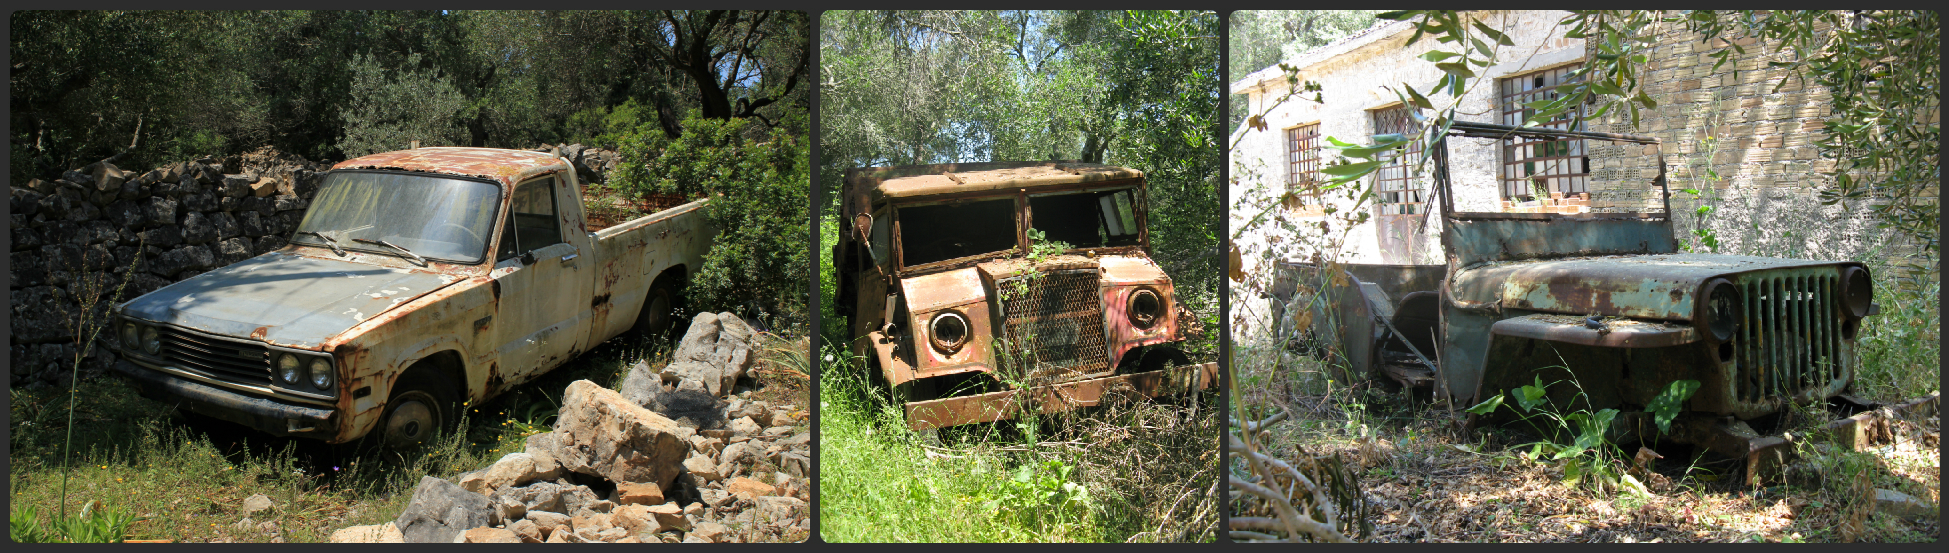 Abandoned vehicles